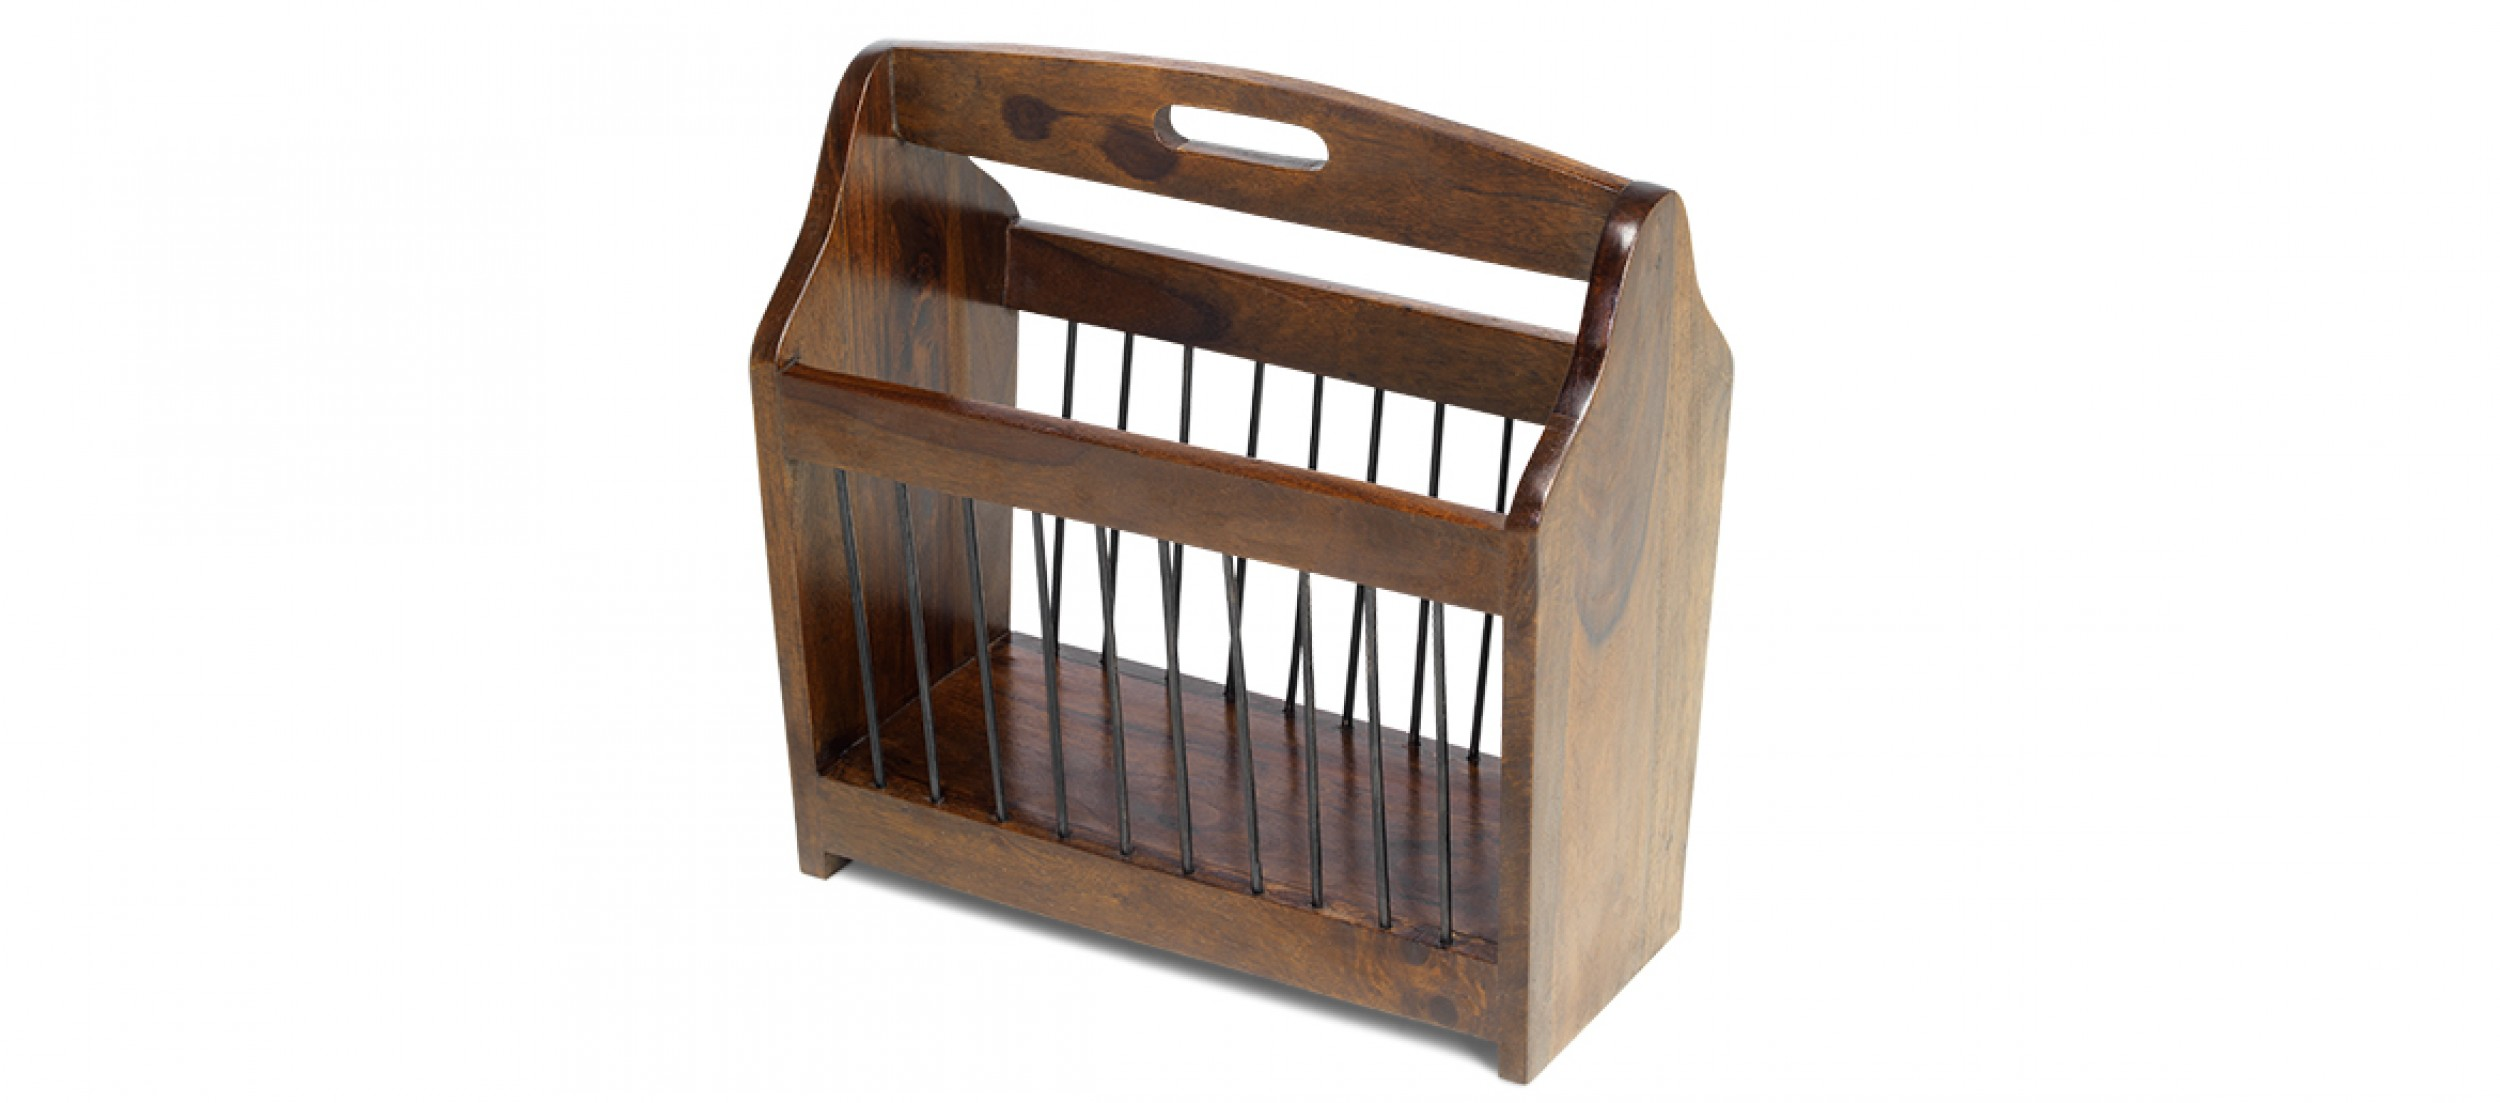 Cube sheesham magazine rack quercus living for Magazine racks for home